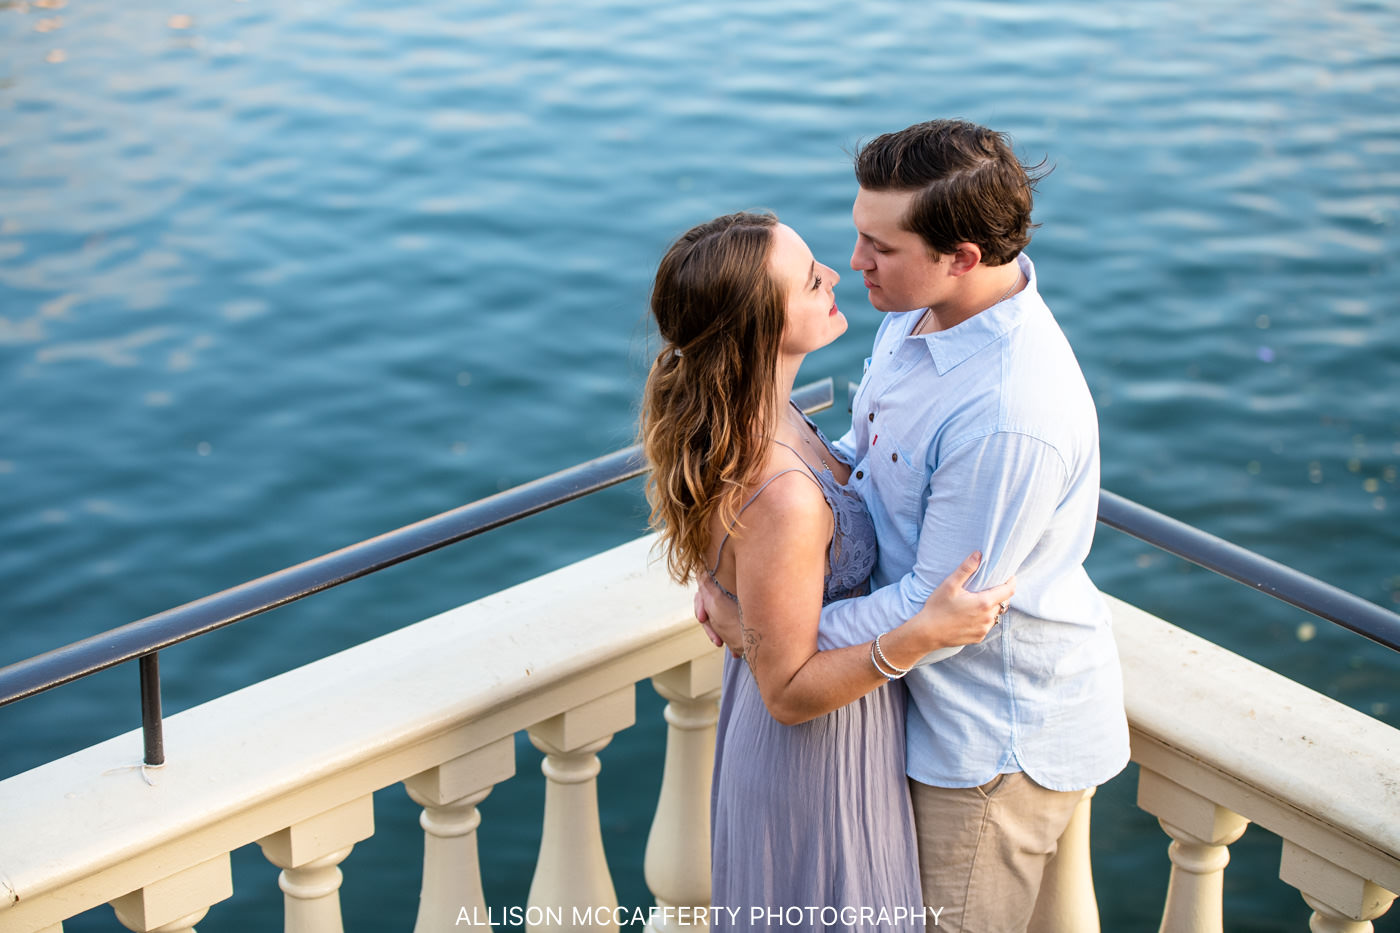 Philadelphia Engagement Session Location Ideas